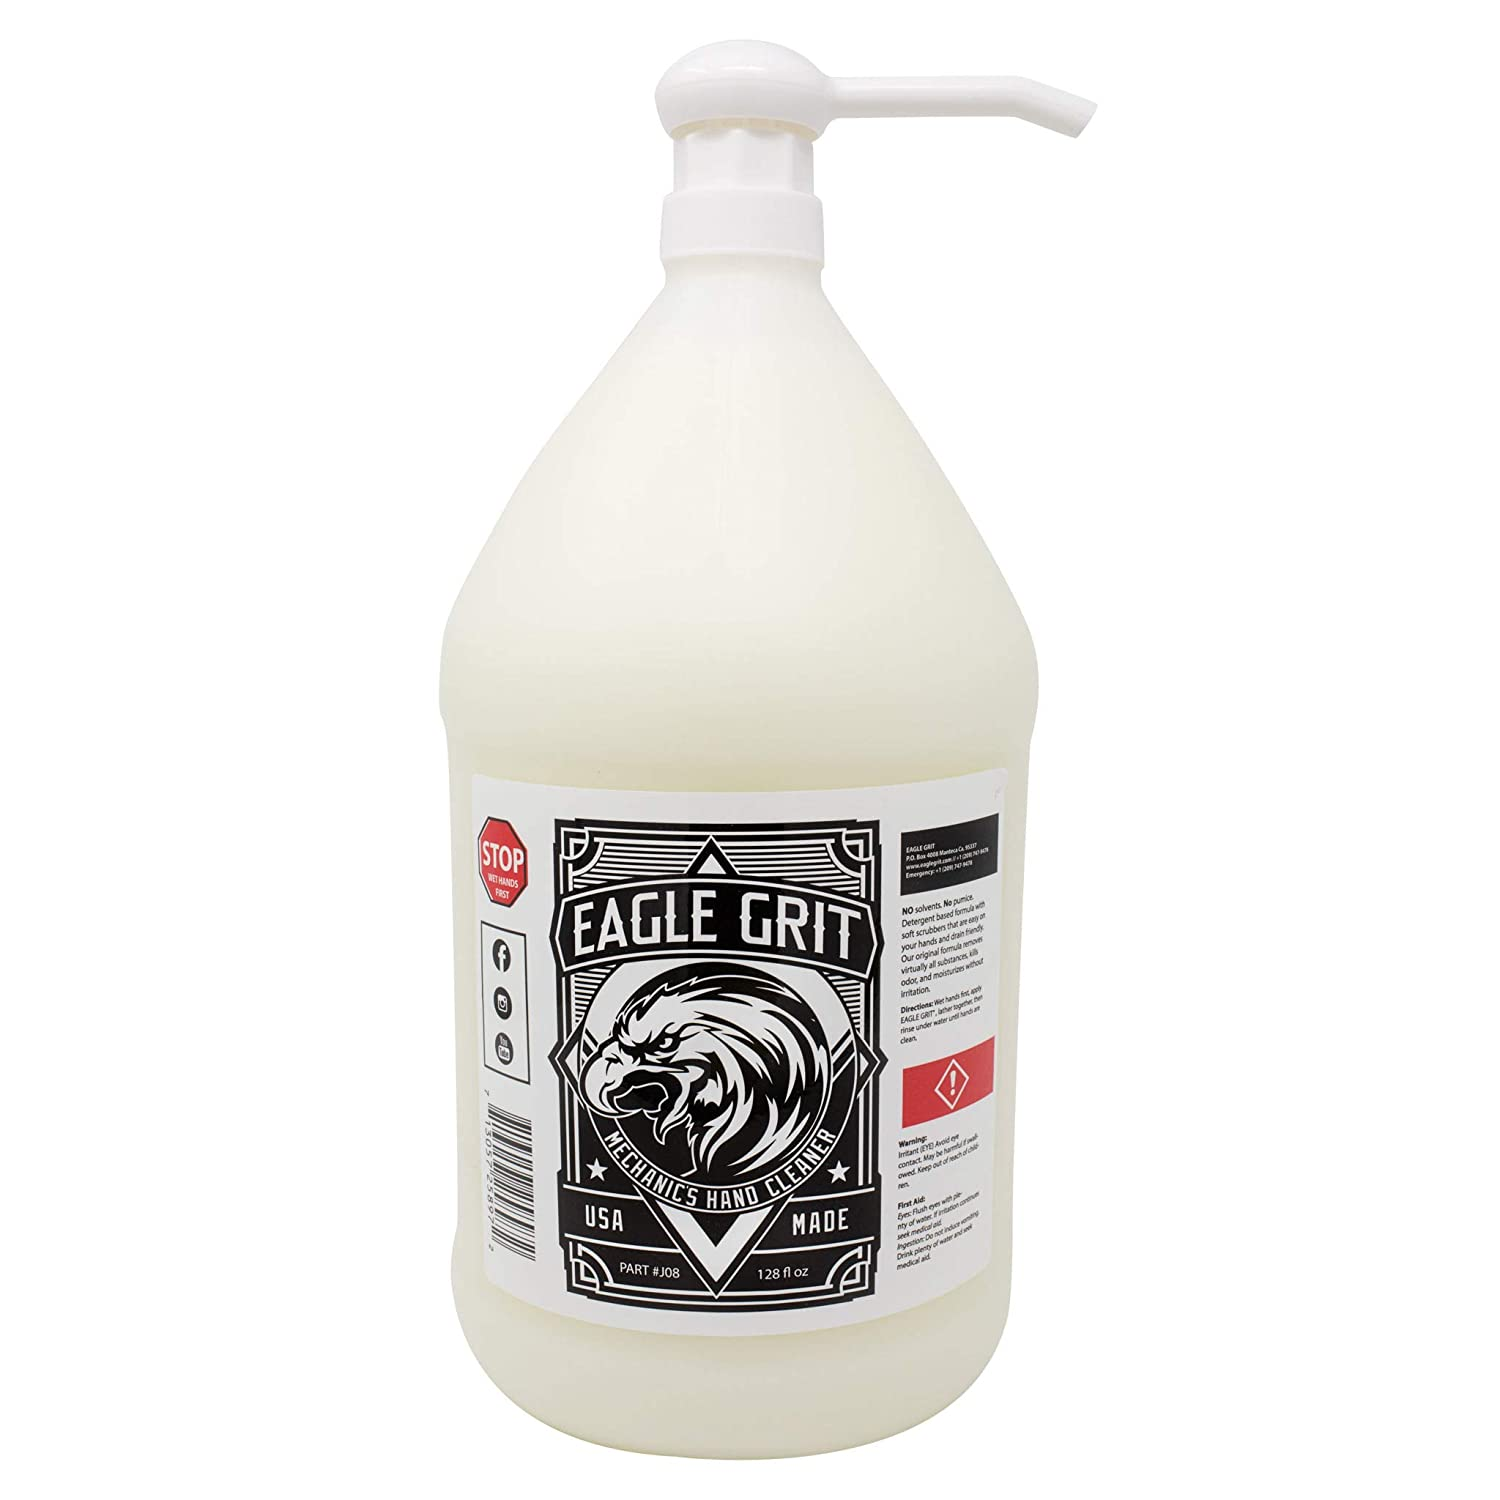 Eagle Grit Heavy Duty Industrial Hand Cleaner For Mechanics